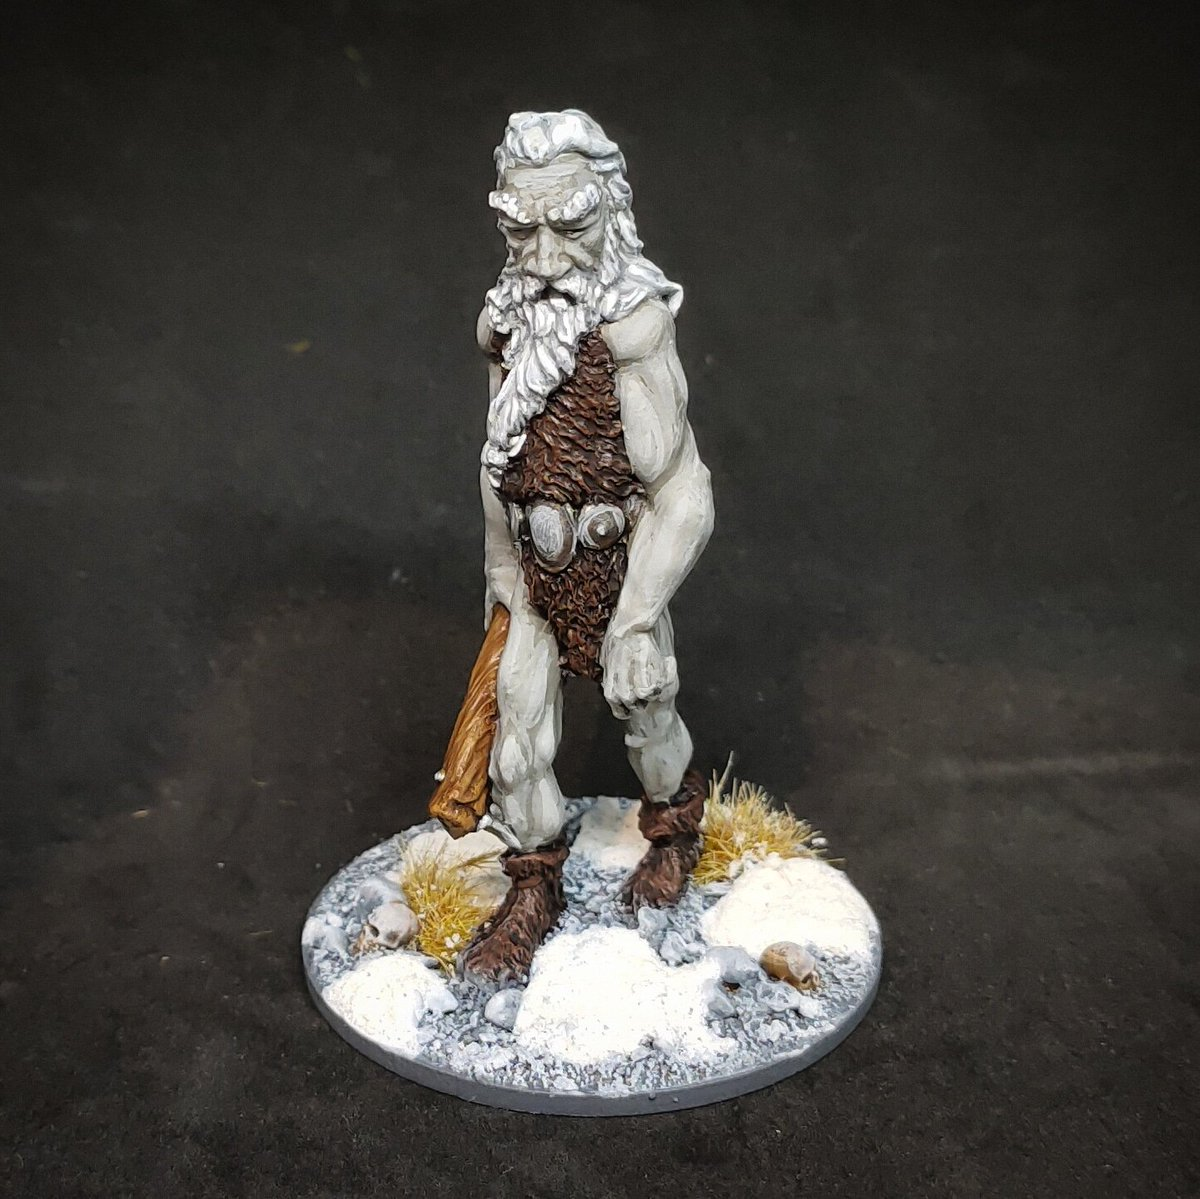 A classic Frost Giant for #frostgrave and #ofgodsandmortals. An unbeatable #oldhammer sculpt by Tom Meir for #ralpartha https://t.co/CJ9wmteHPV